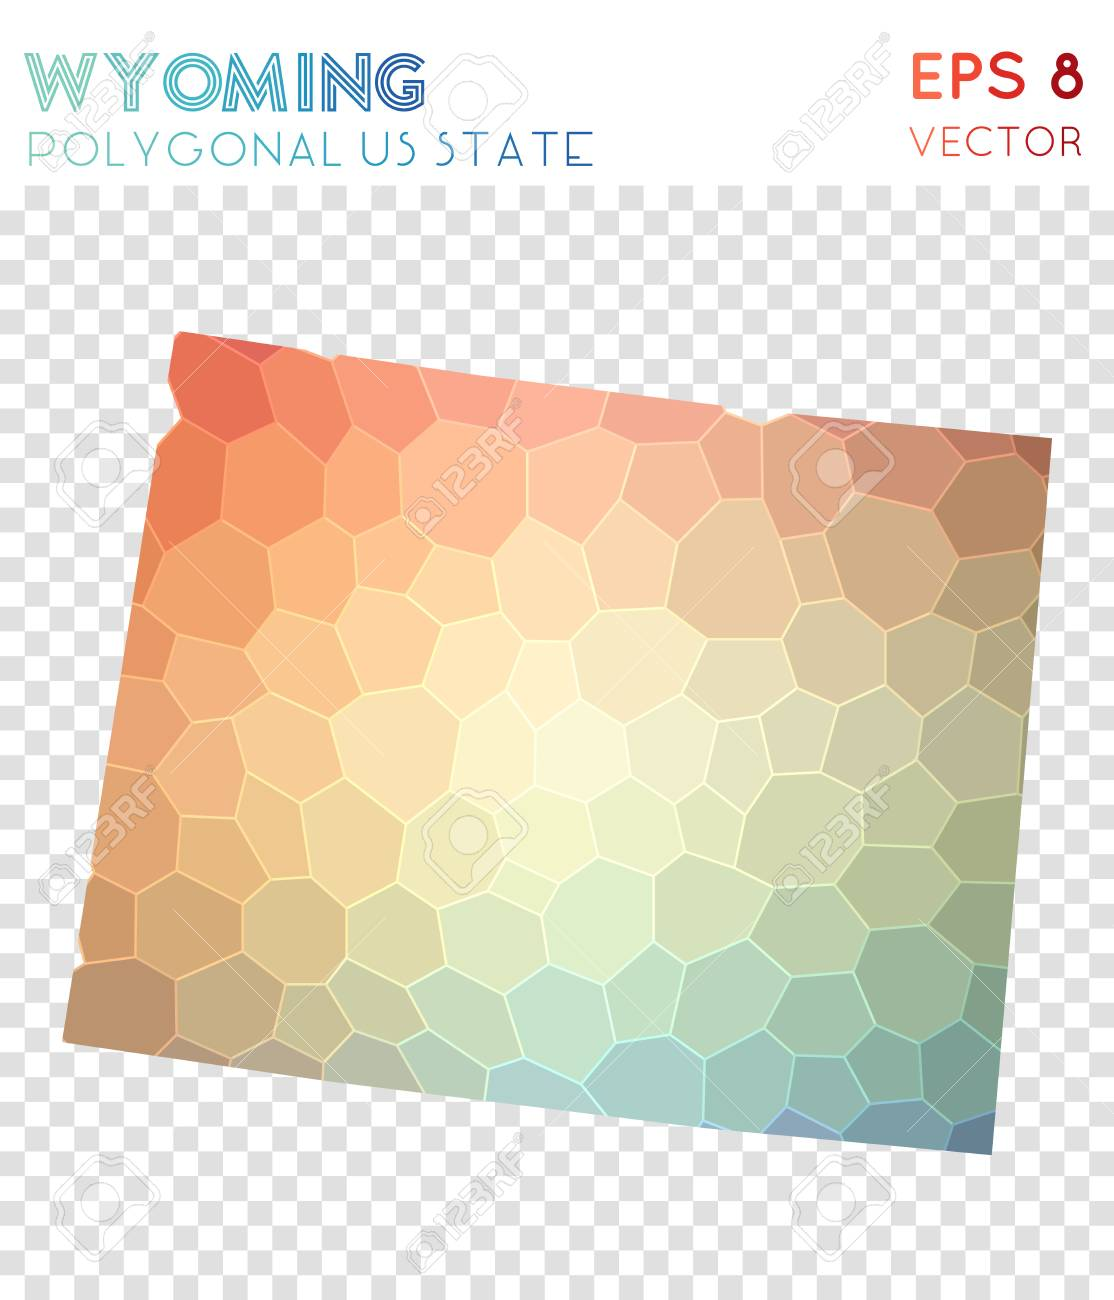 Wyoming Polygonal Map Mosaic Style Us State Cute Low Poly Style - Cute-us-map